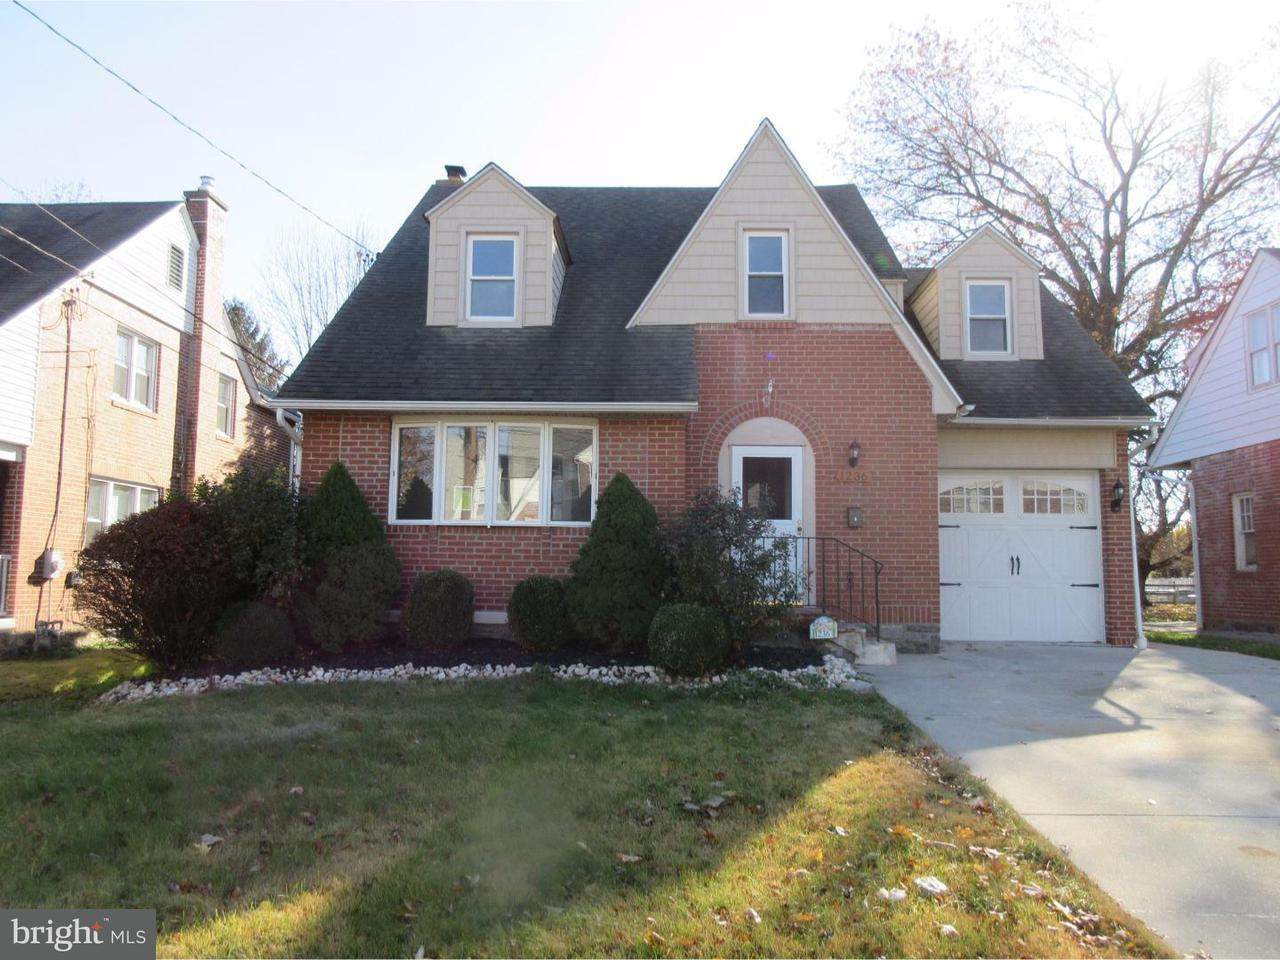 Single Family Home for Sale at 1236 JEFFERSON Avenue Woodlyn, Pennsylvania 19094 United States